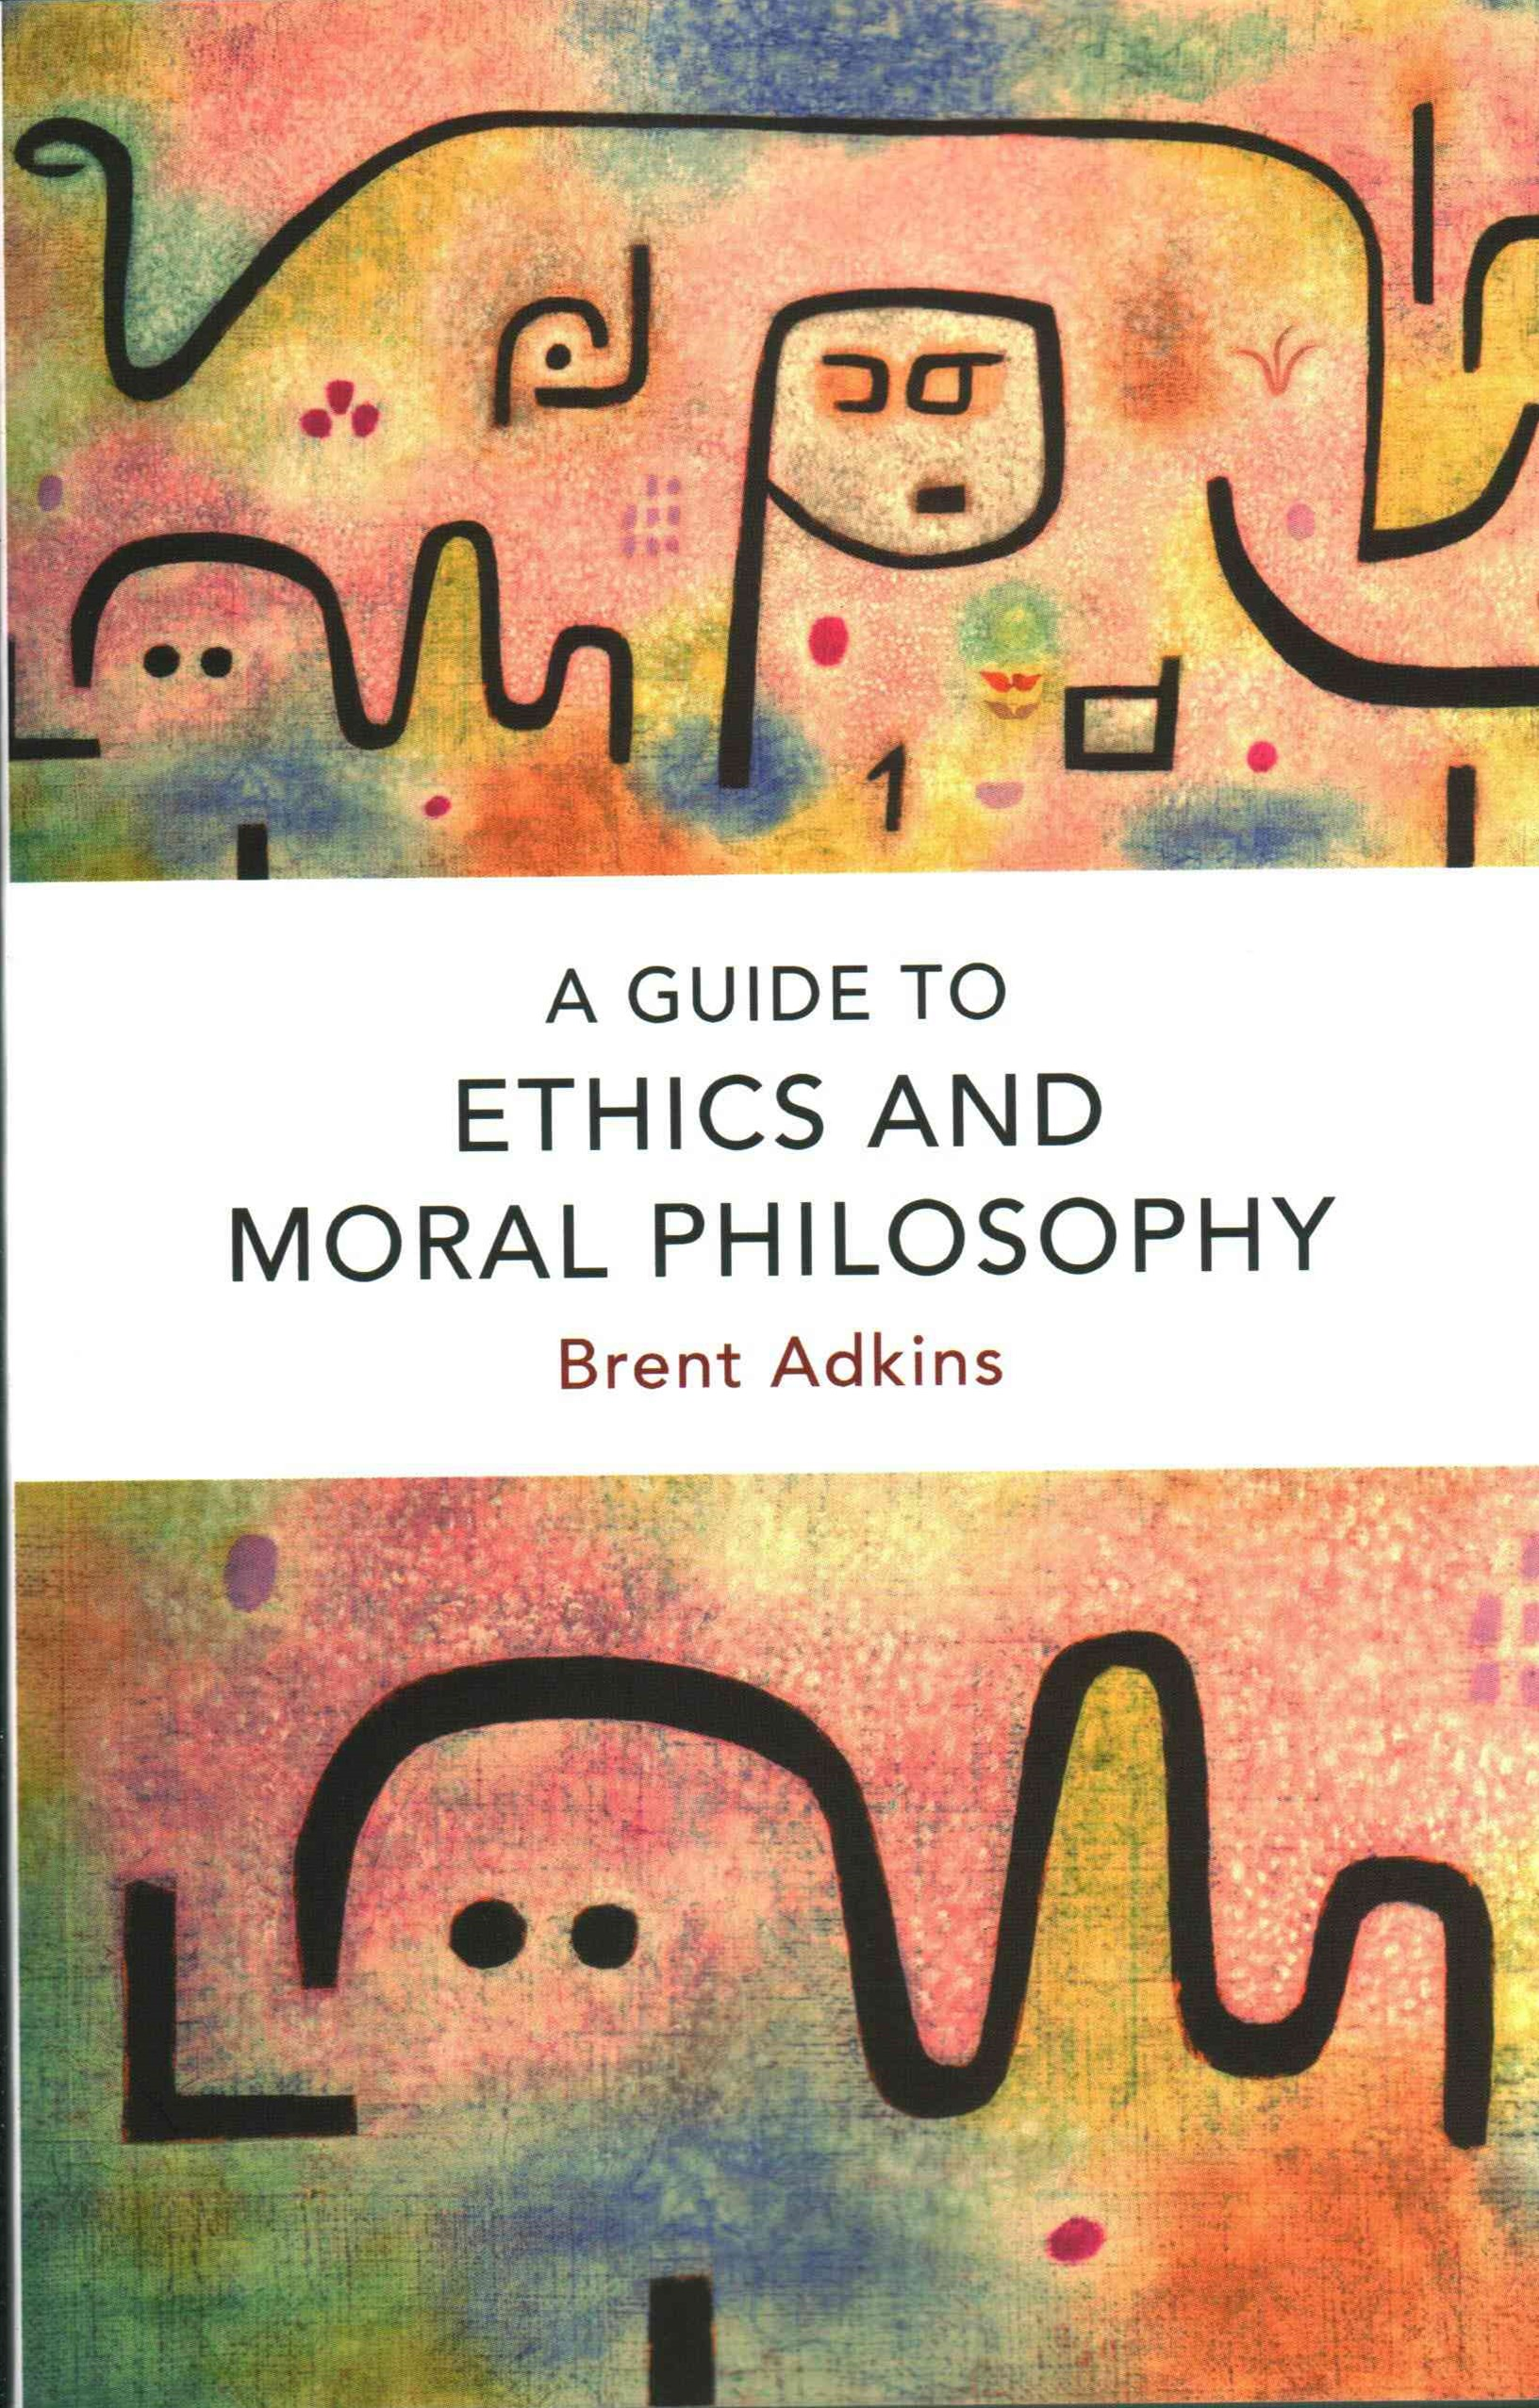 A Guide to Ethics and Moral Philosophy